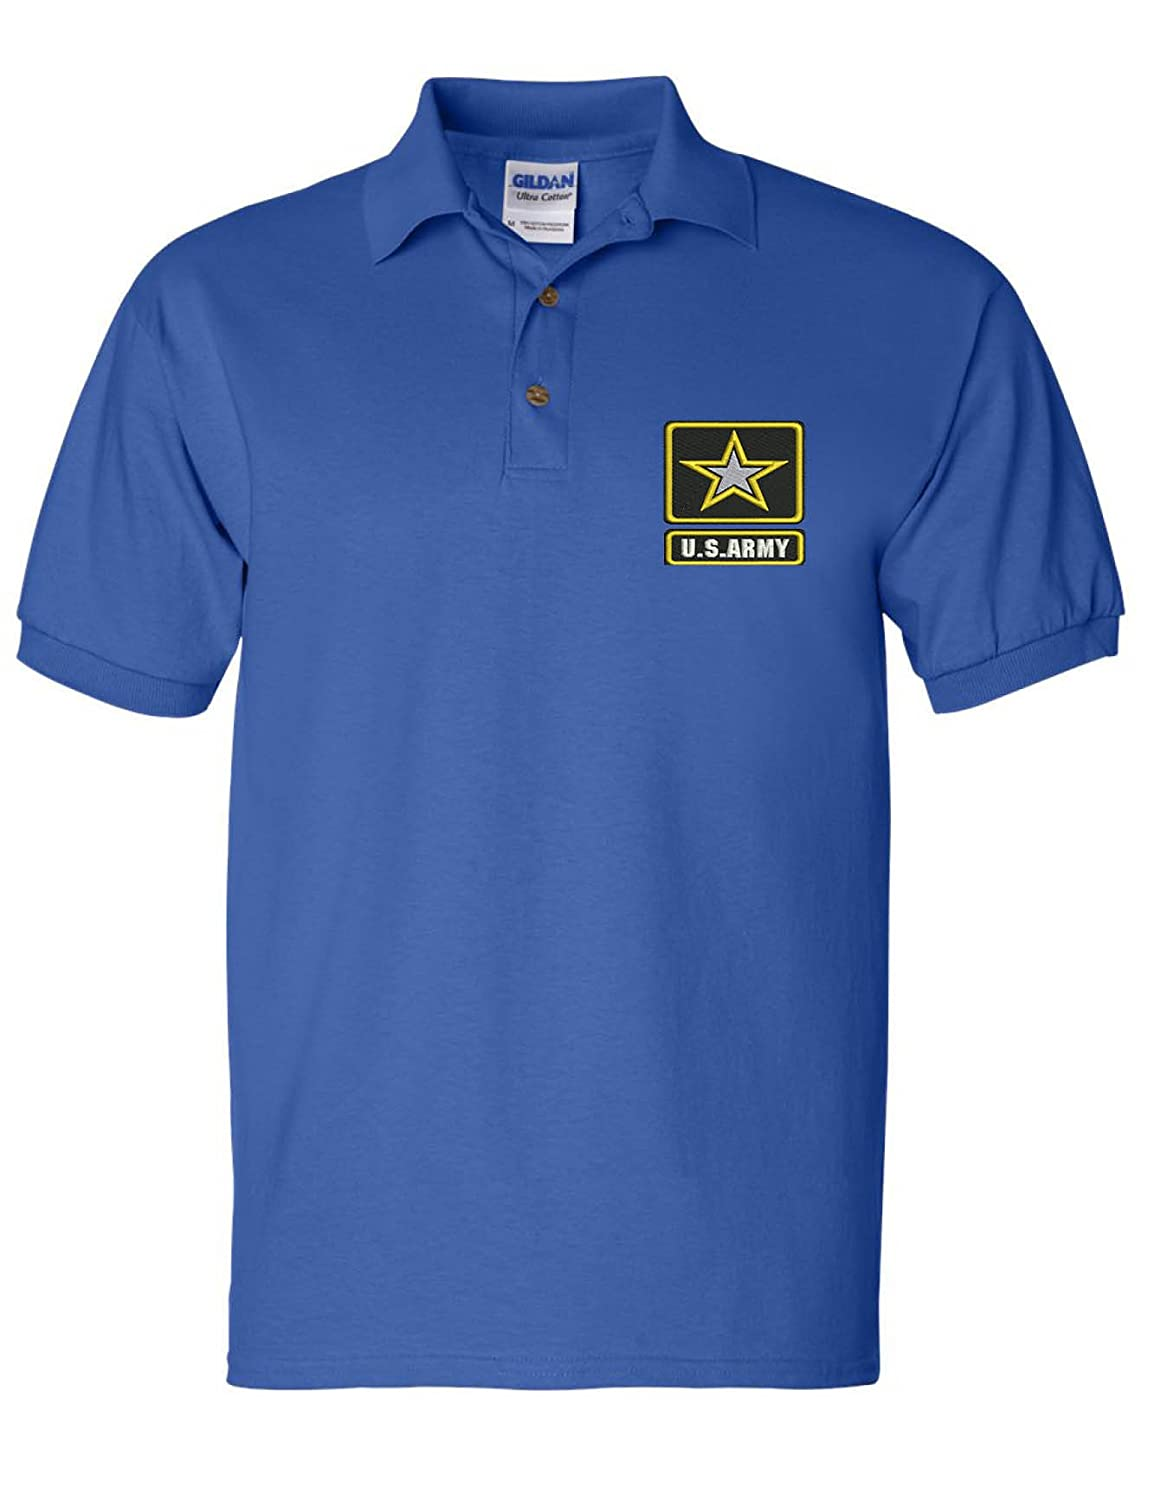 Allntrends Mens Polo T Shirt US Army Embroidered Military USA Army